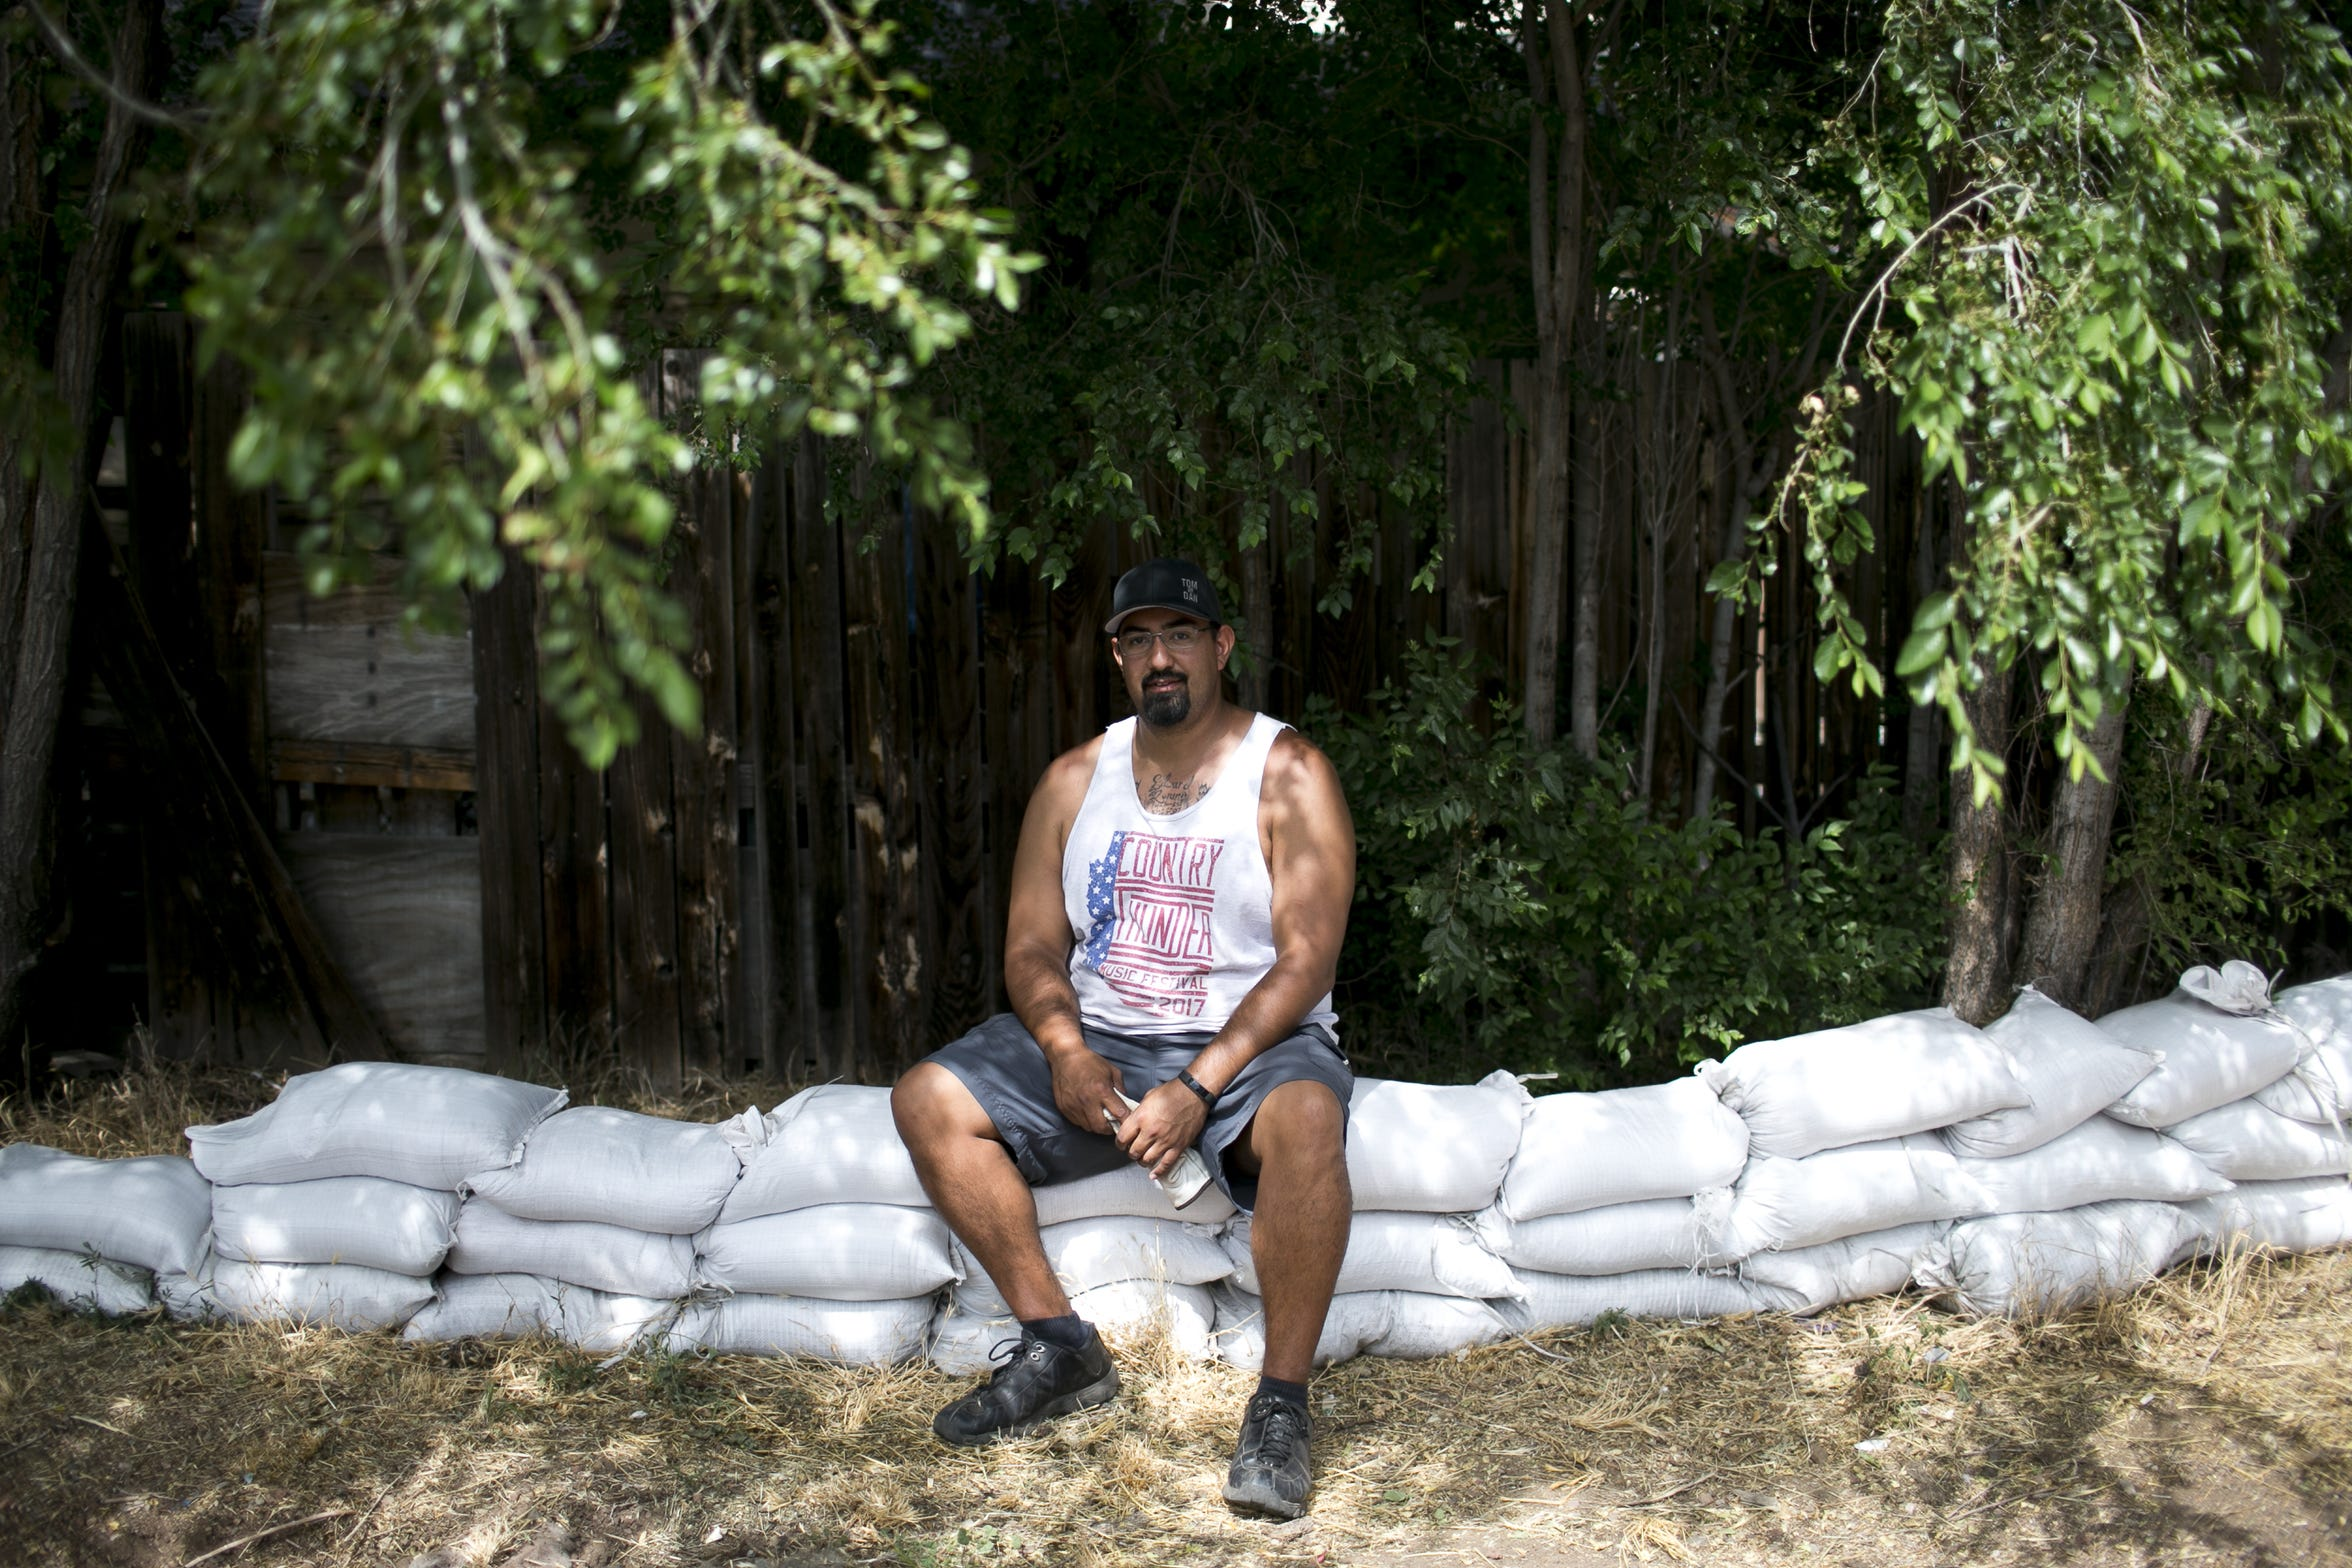 Flagstaff resident Richard Duran sits on a wall of sand bags he filled to protect his goddaughter's home from flooding in Sunnyside in Flagstaff on July 24, 2019. As the Museum Fire burned on in the mountains northwest of Flagstaff, residents in the Sunnyside community prepared for flooding feared to be worsened in the monsoon season due to the fire.